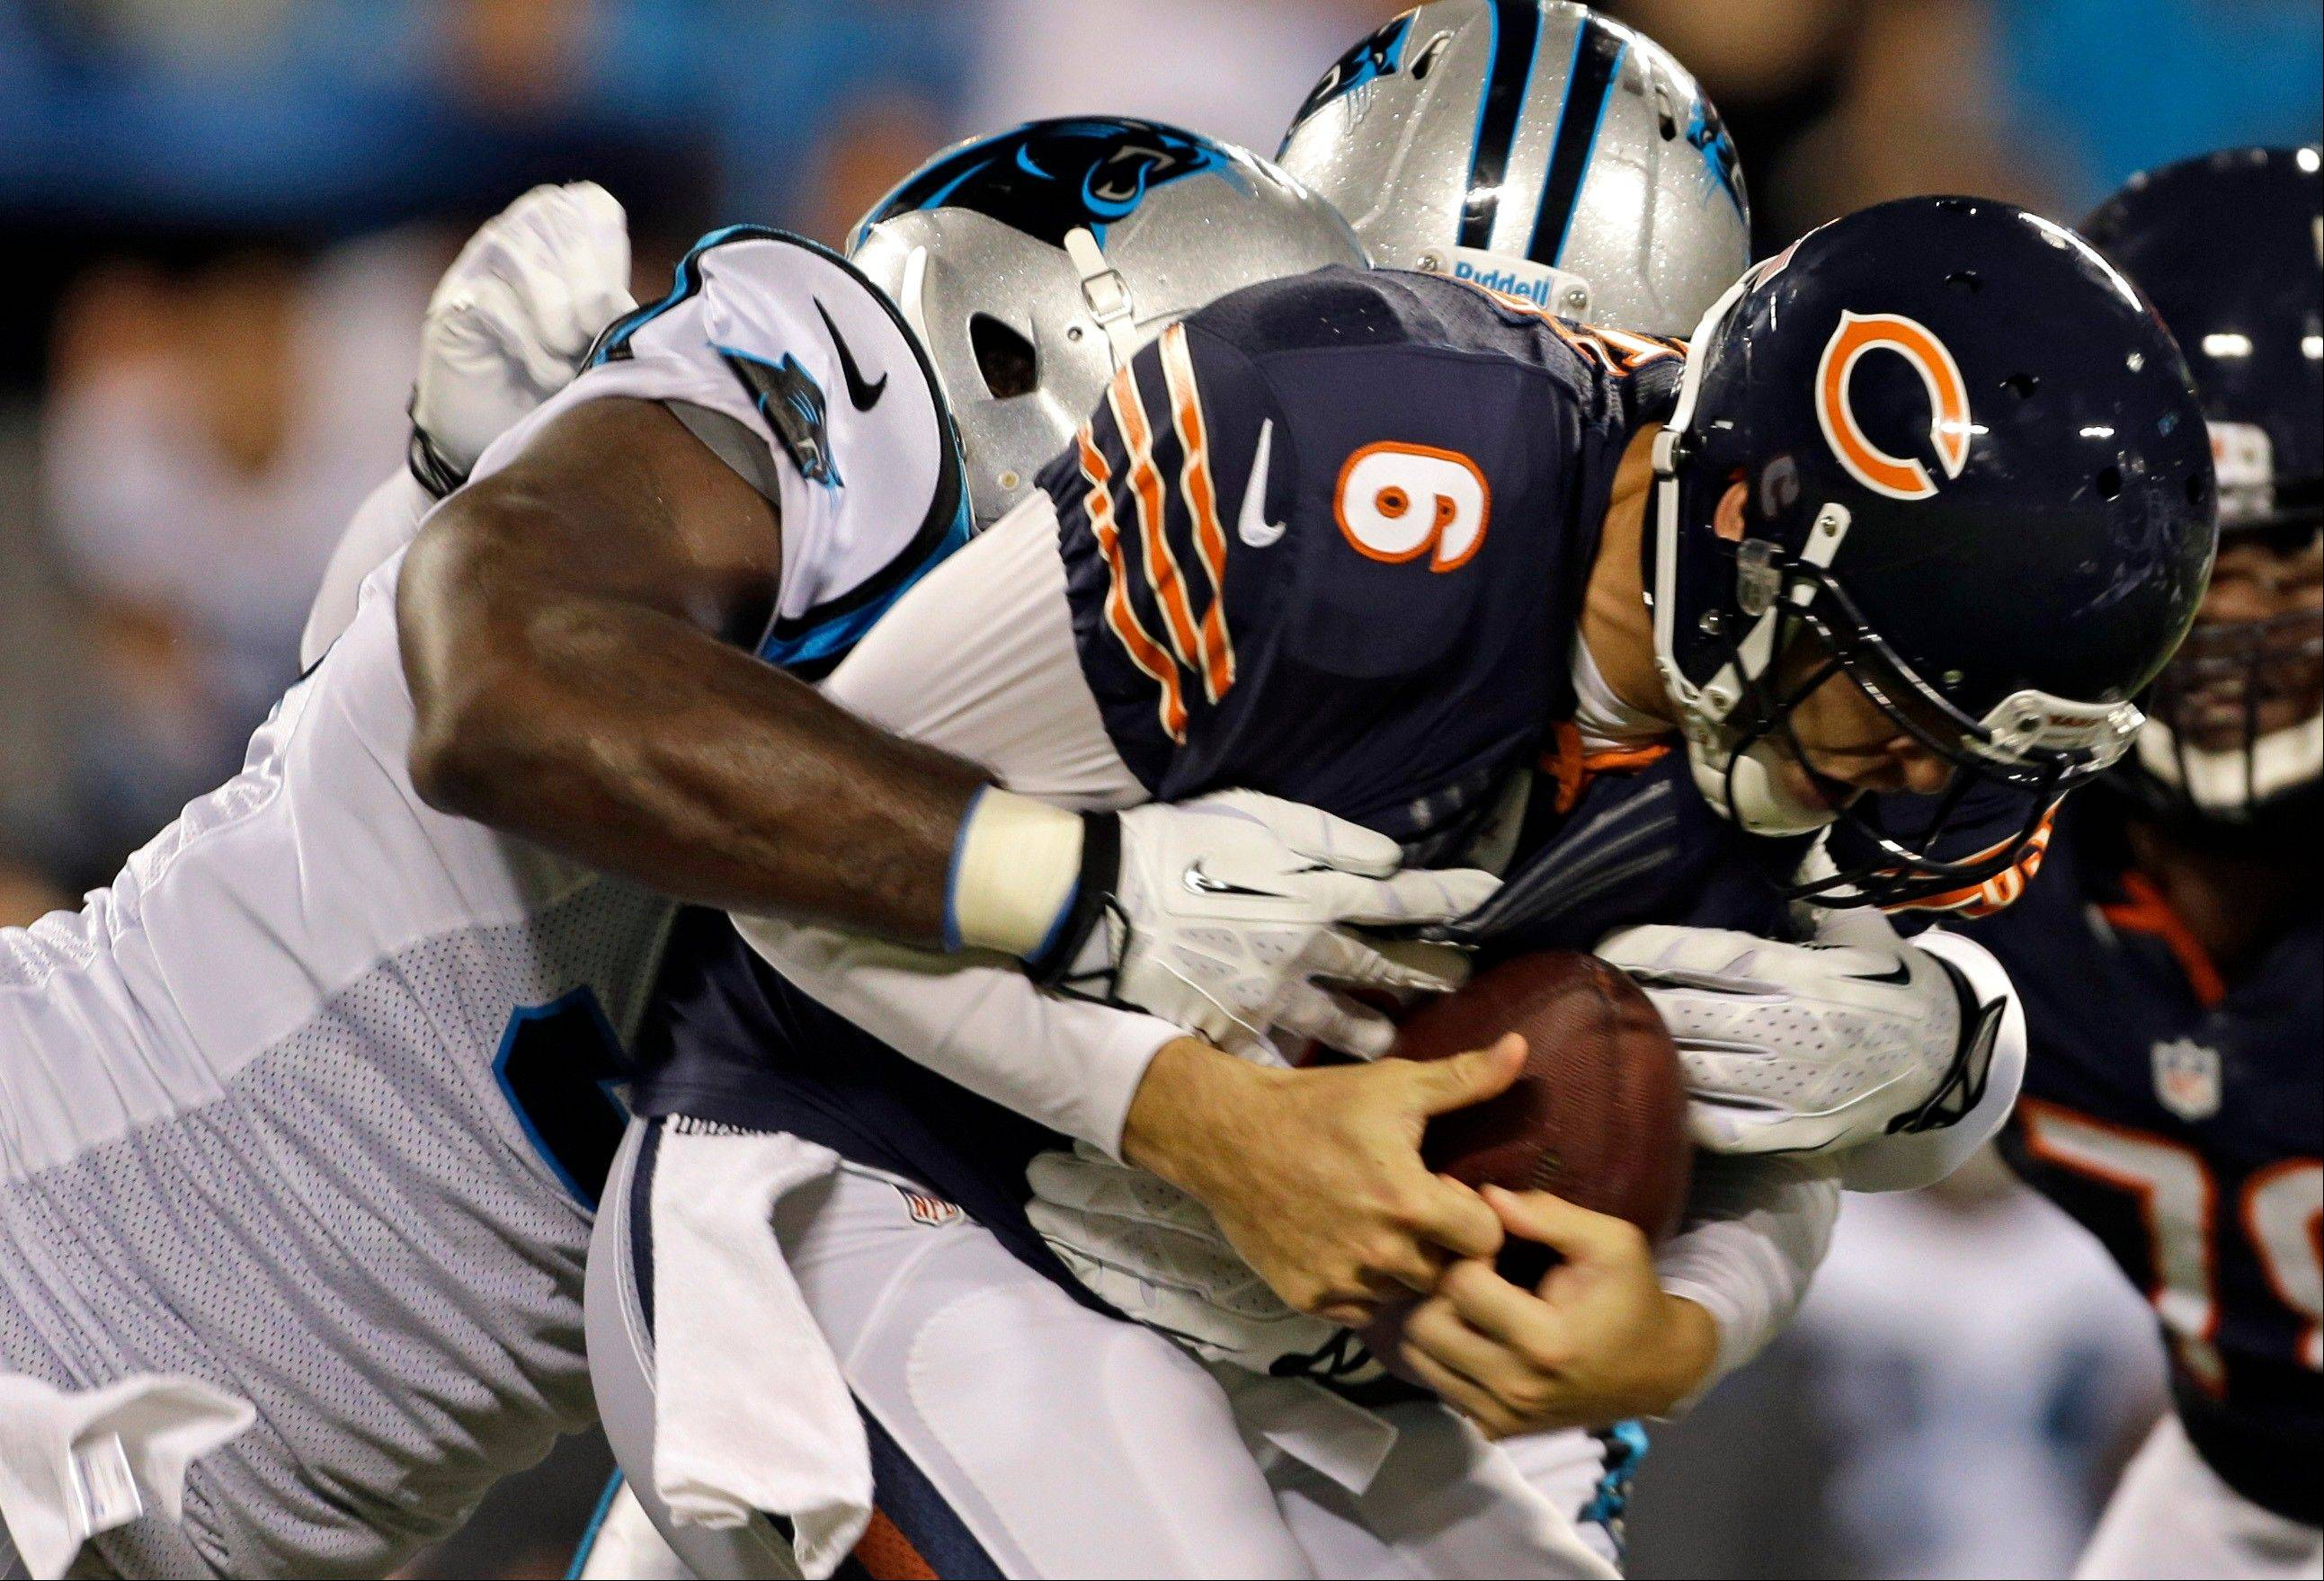 Bears quarterback Jay Cutler (6) is sacked by Carolina Panthers' Charles Johnson, left, during the first half of a preseason NFL football game in Charlotte, N.C., Friday, Aug. 9, 2013.